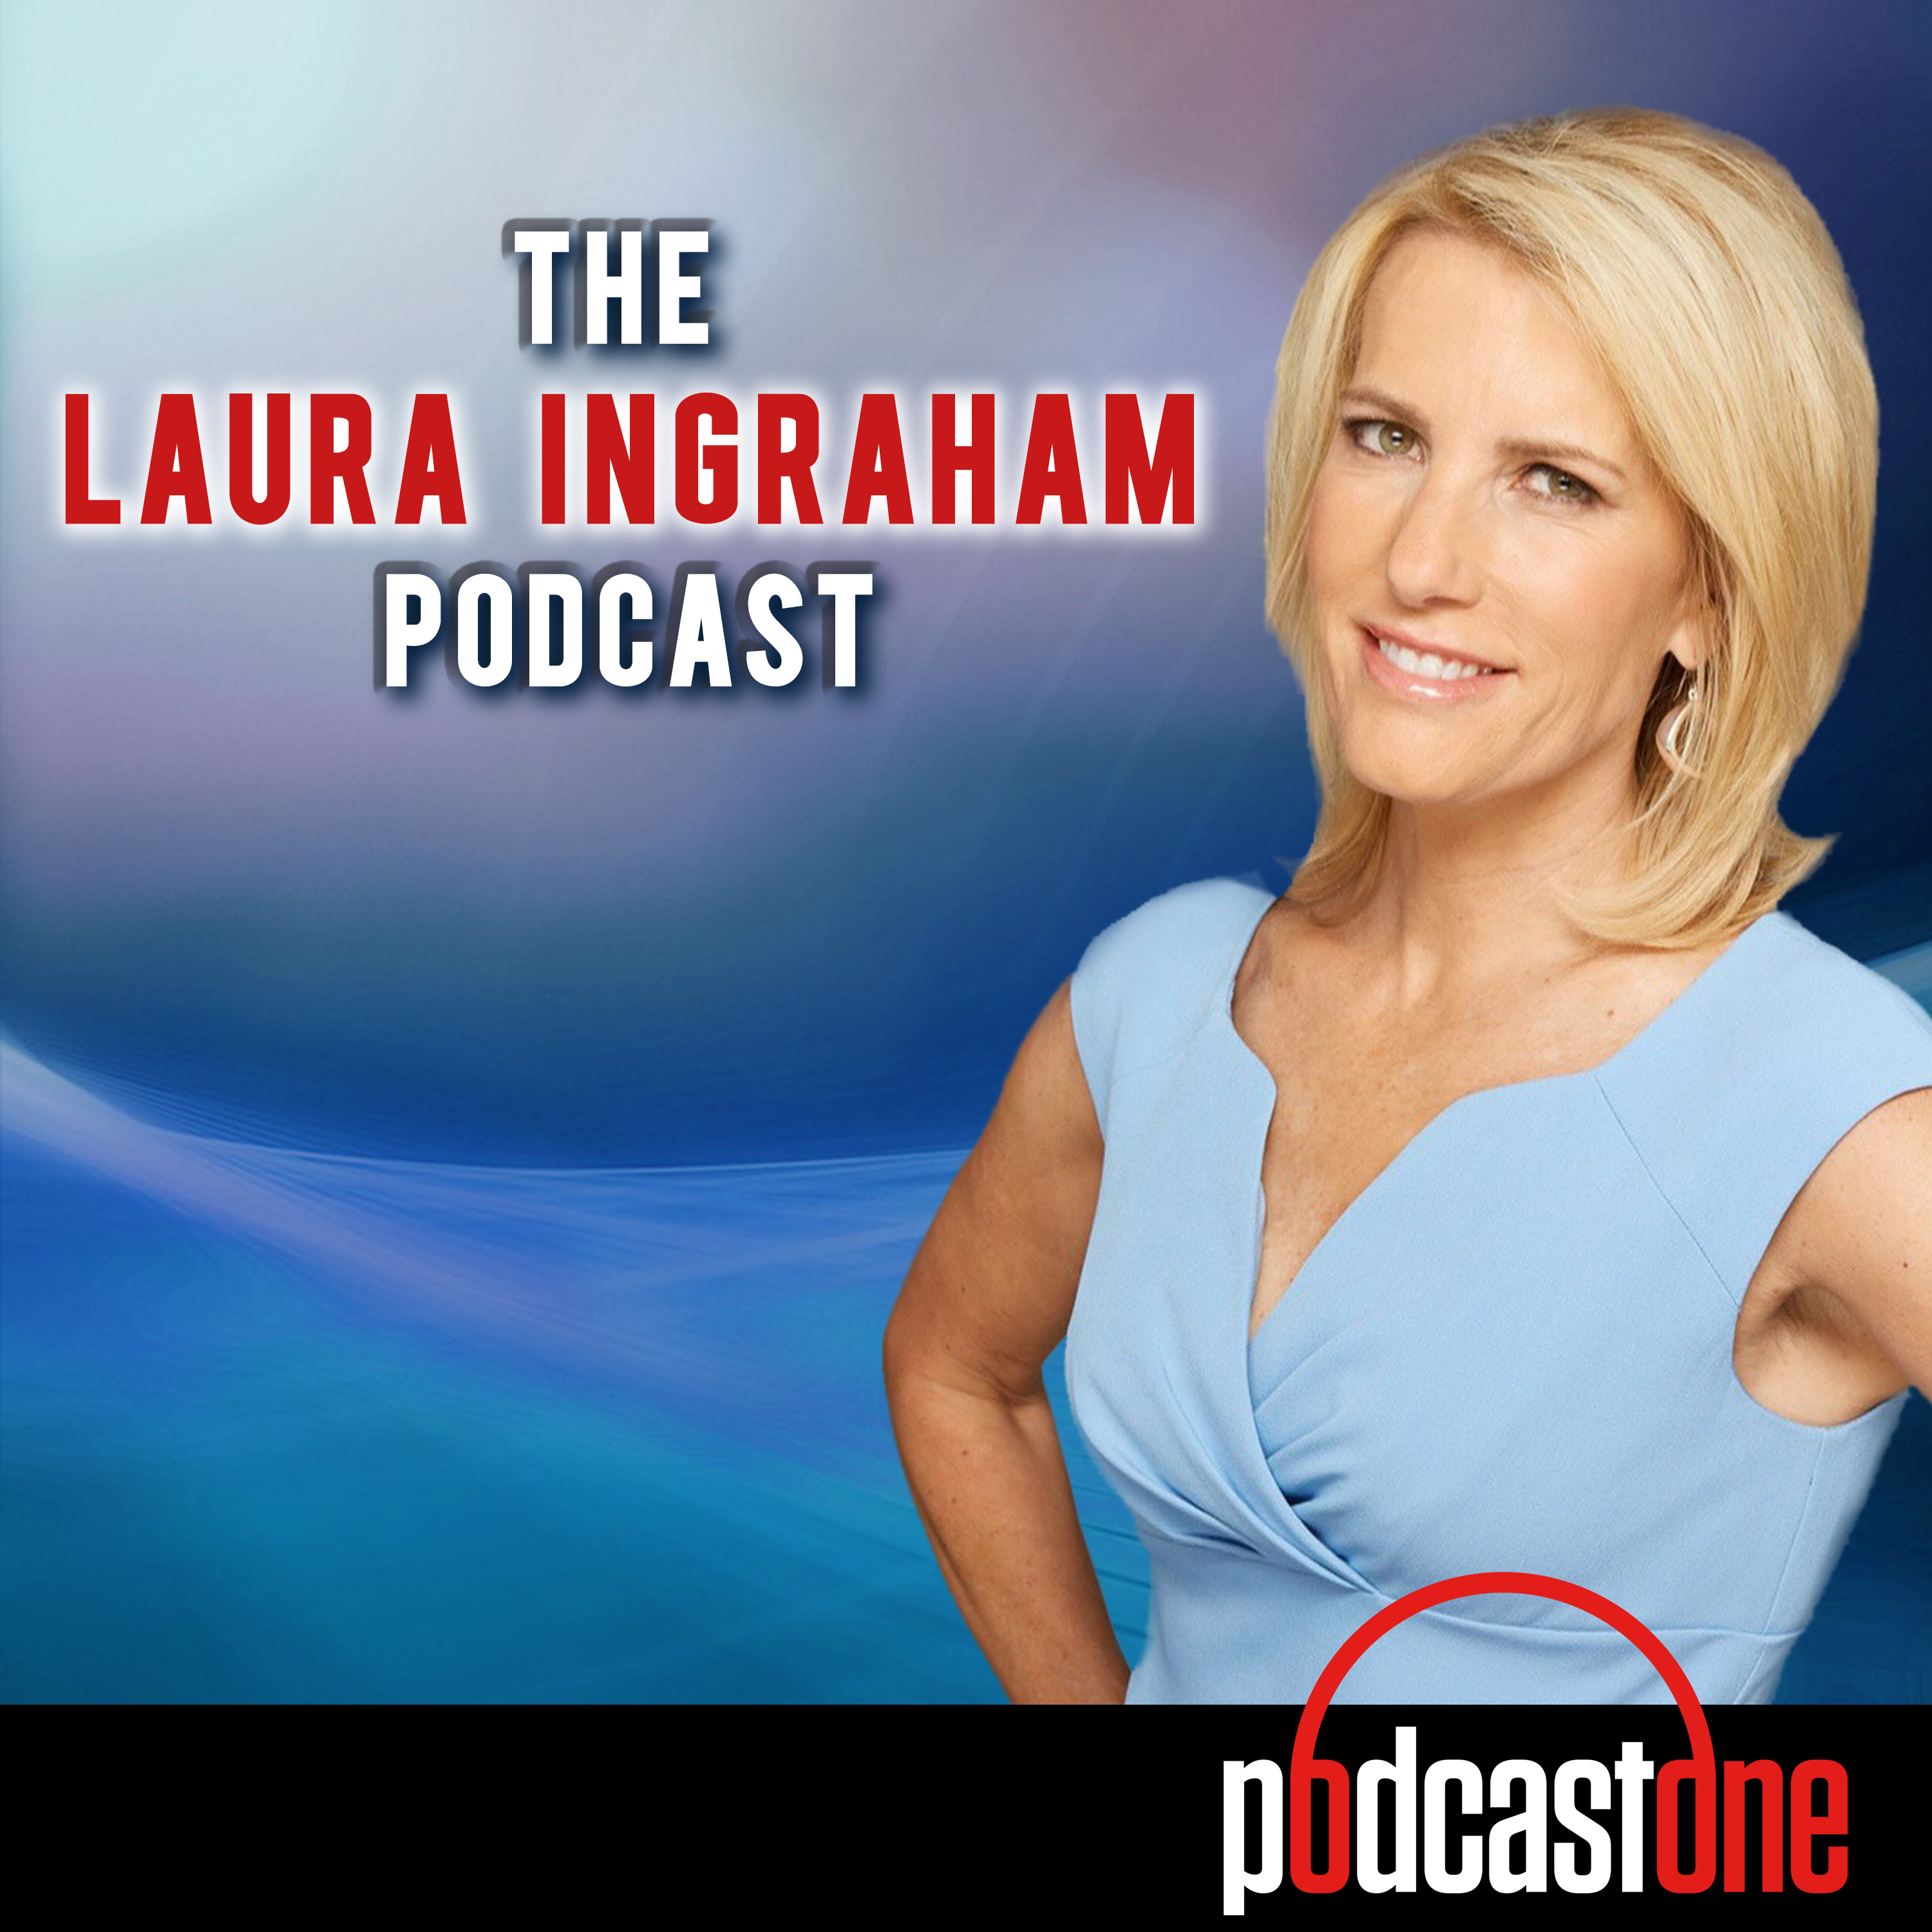 The Laura Ingraham Podcast on Apple Podcasts